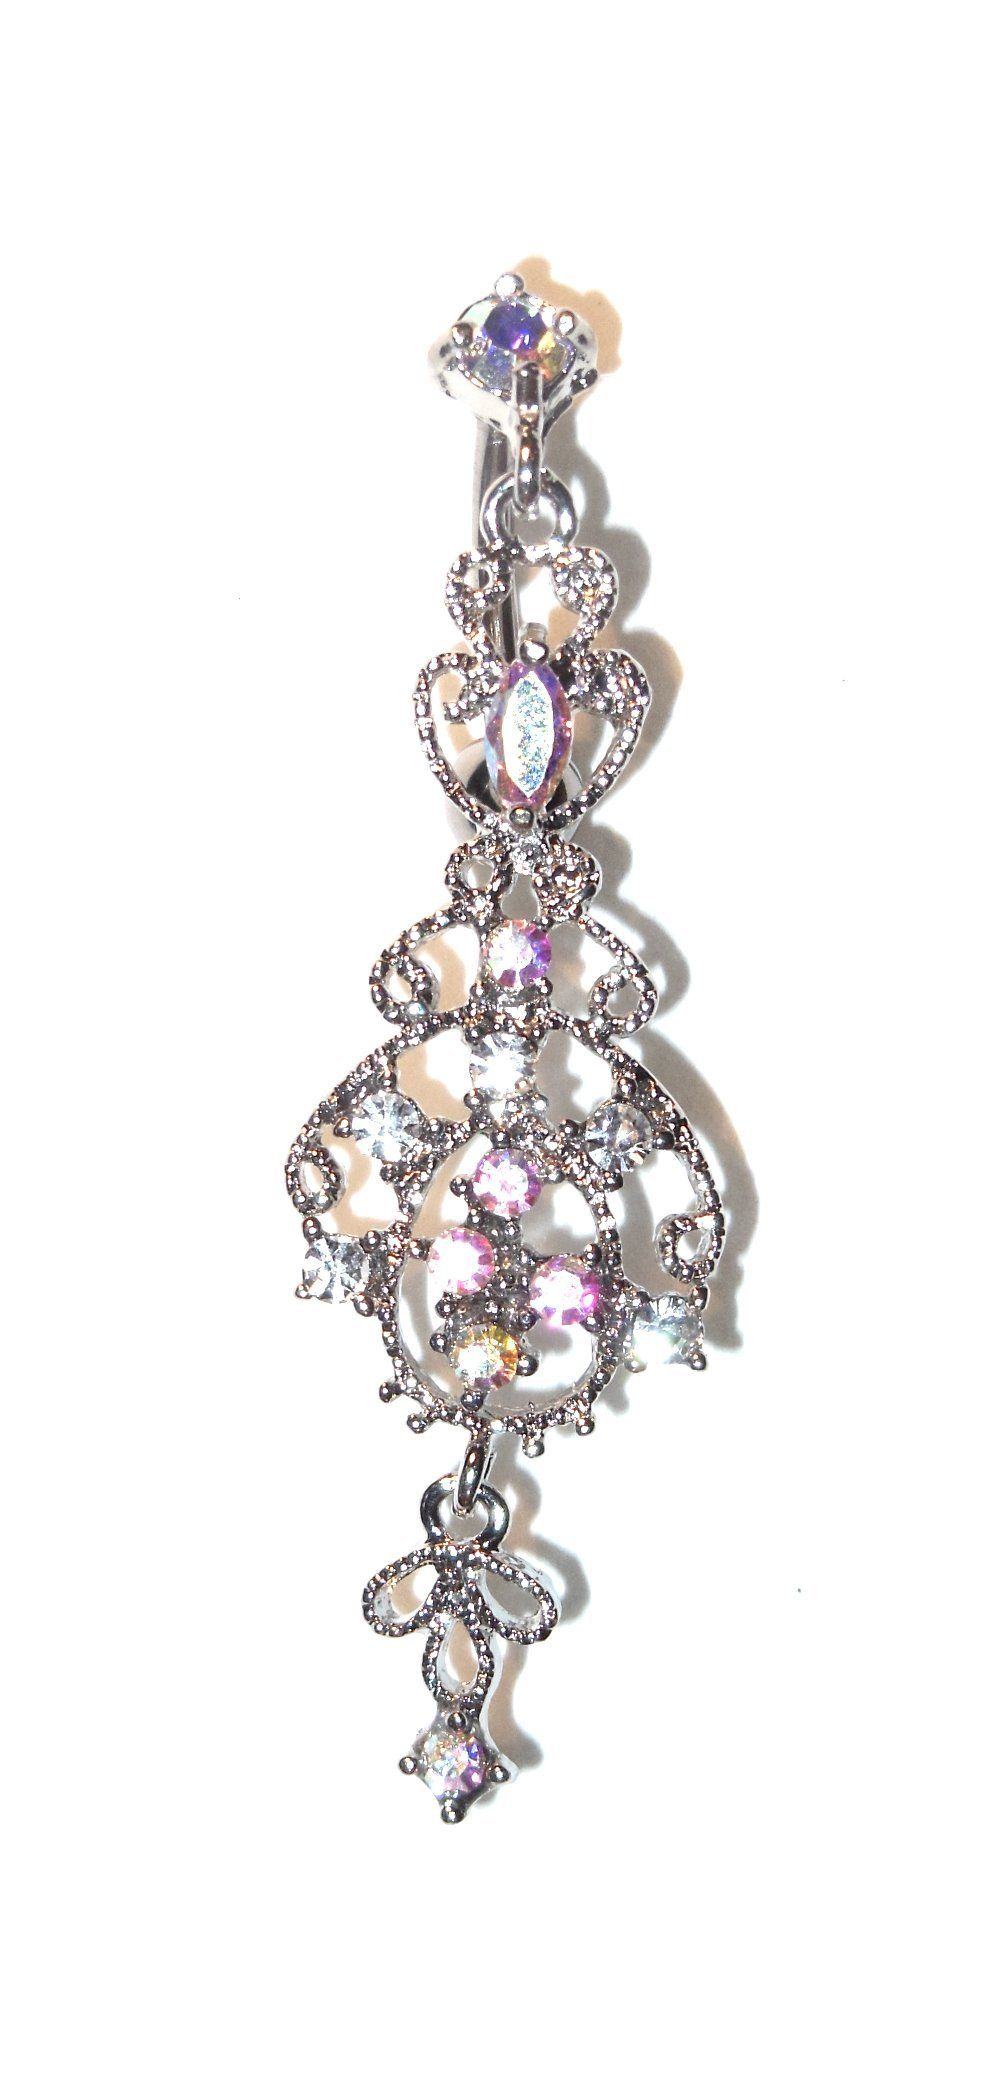 Amazon Com Victorian Style Chandelier Dangle Belly Navel Ring 14 Gauge 3 8 Reverse Top Down Hanging Style Victorian Fashion Navel Rings Piercing Ring